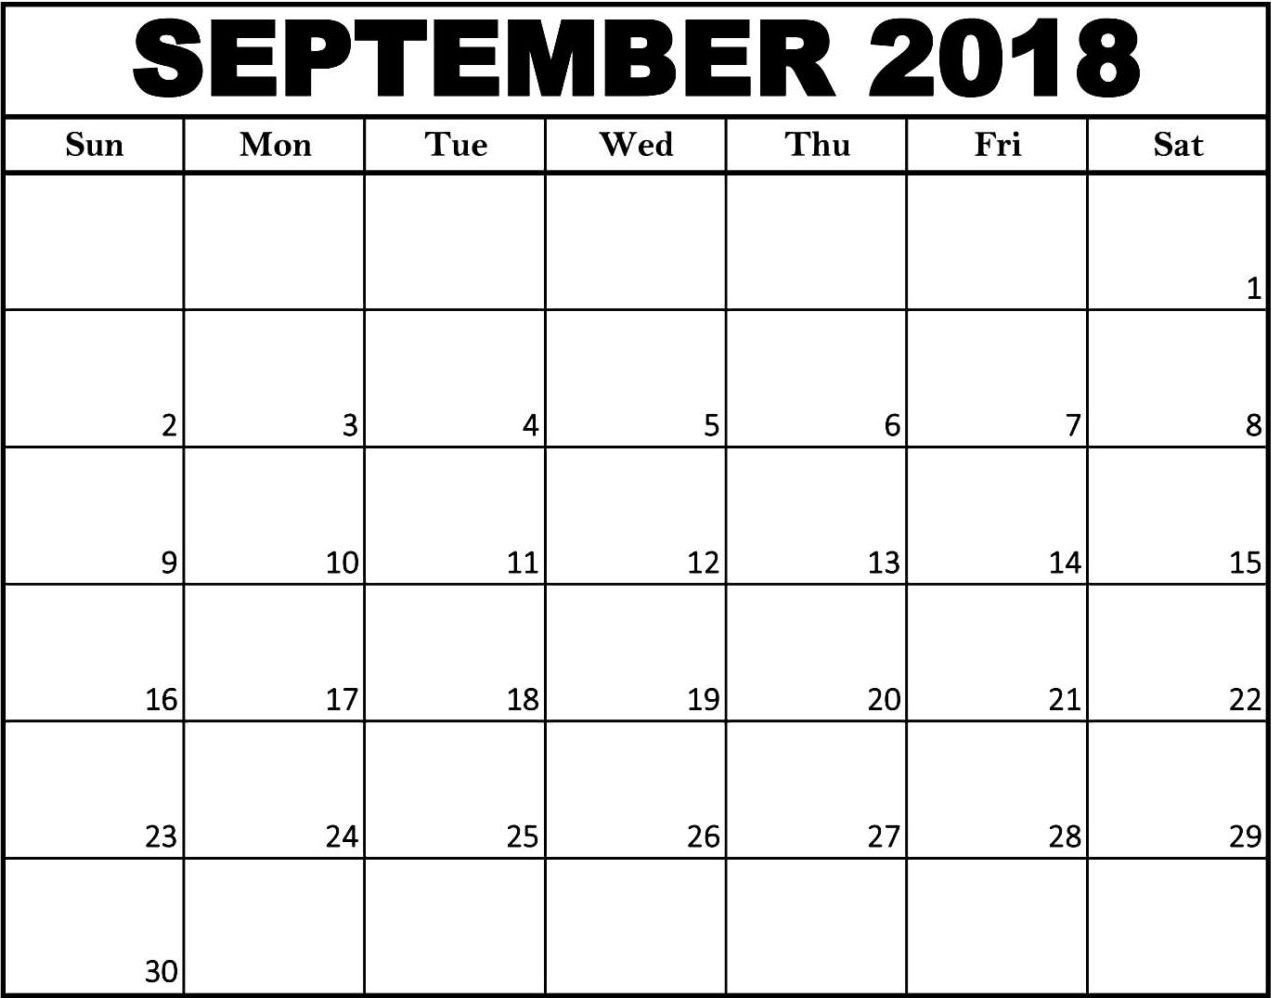 September 2018 Calendar Spanish Printable